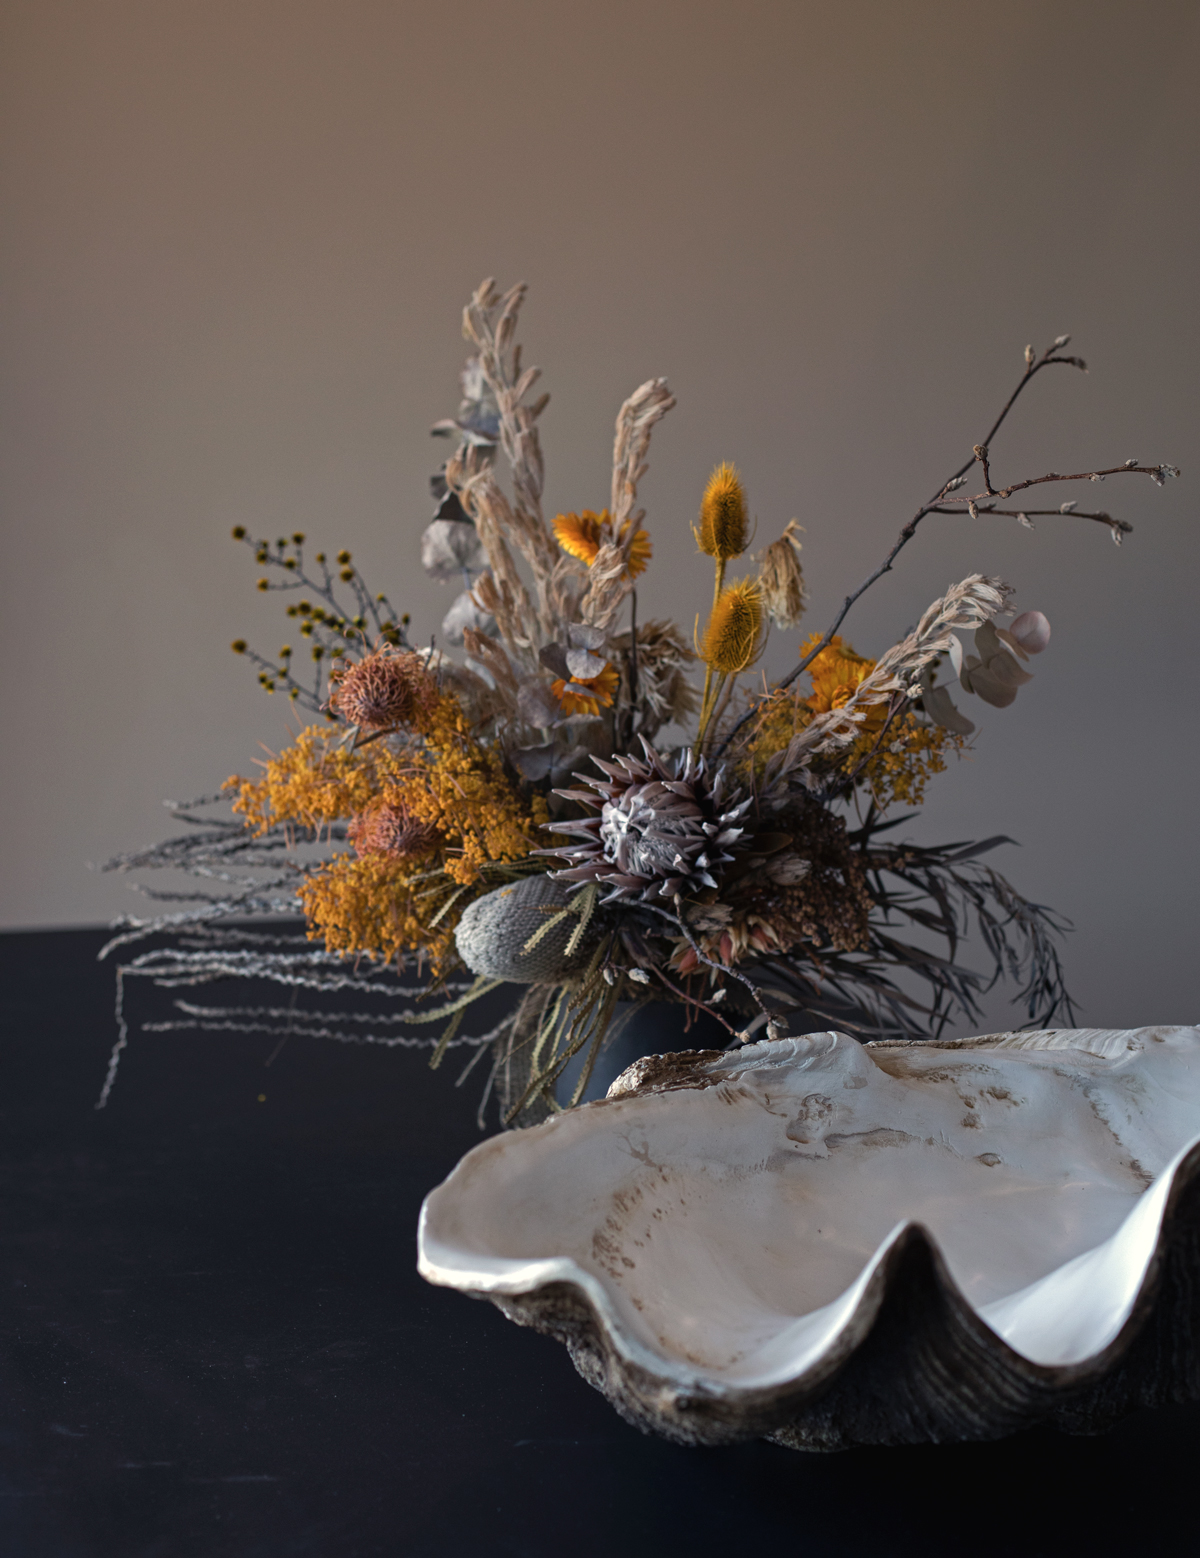 details at Bohemian Traders HQ shell and dried flowers